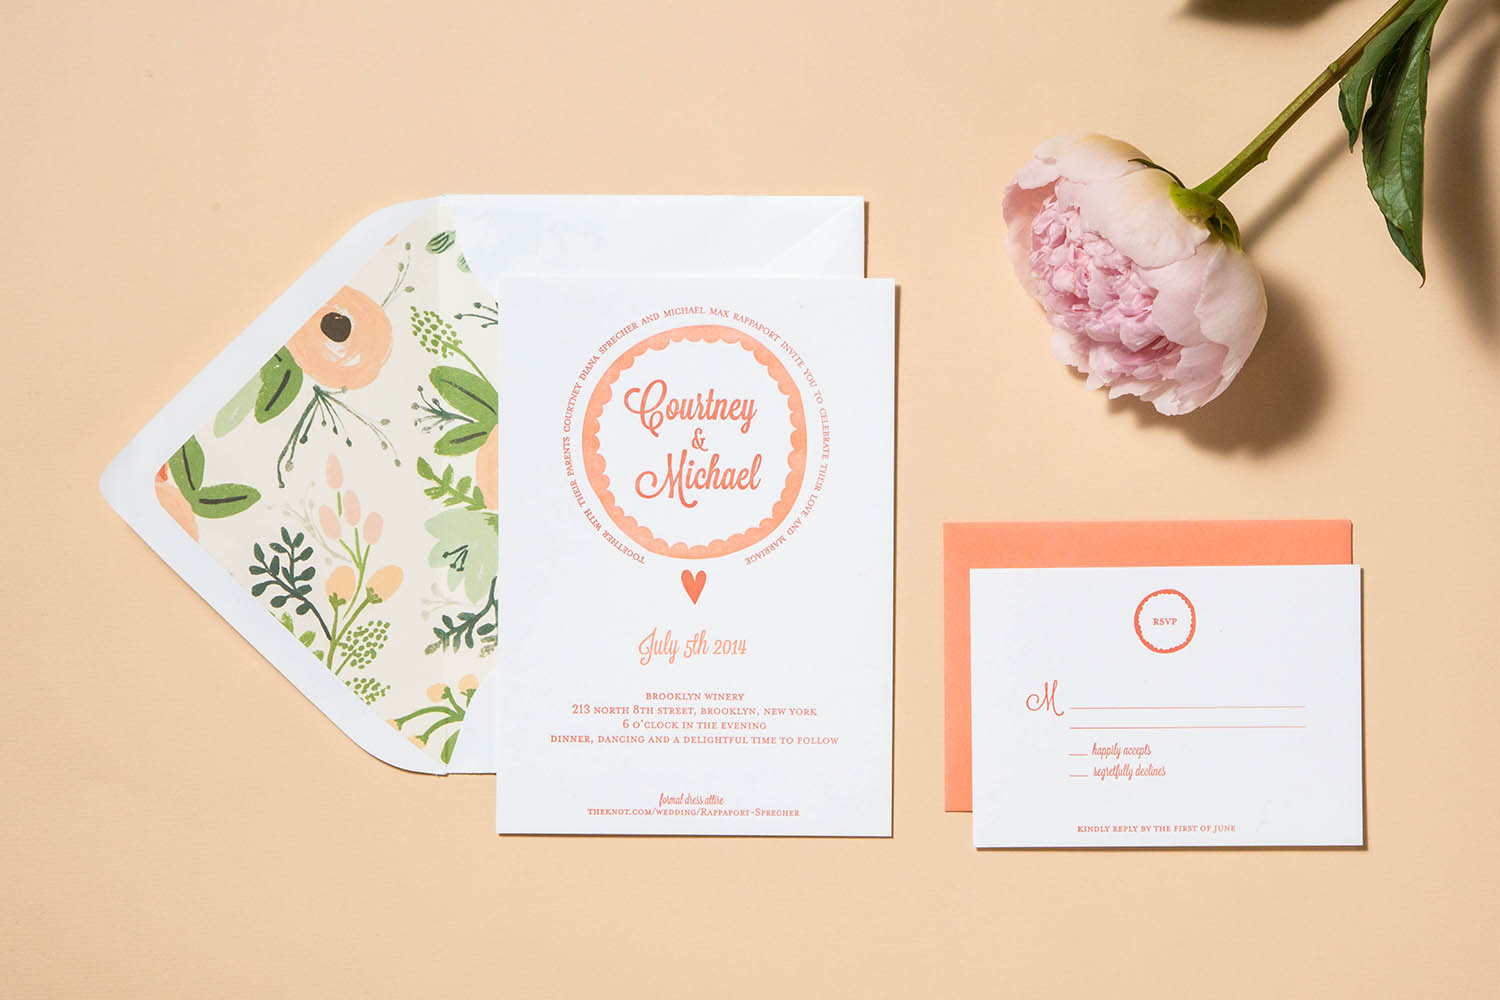 Letterpress Wedding invitation Floral